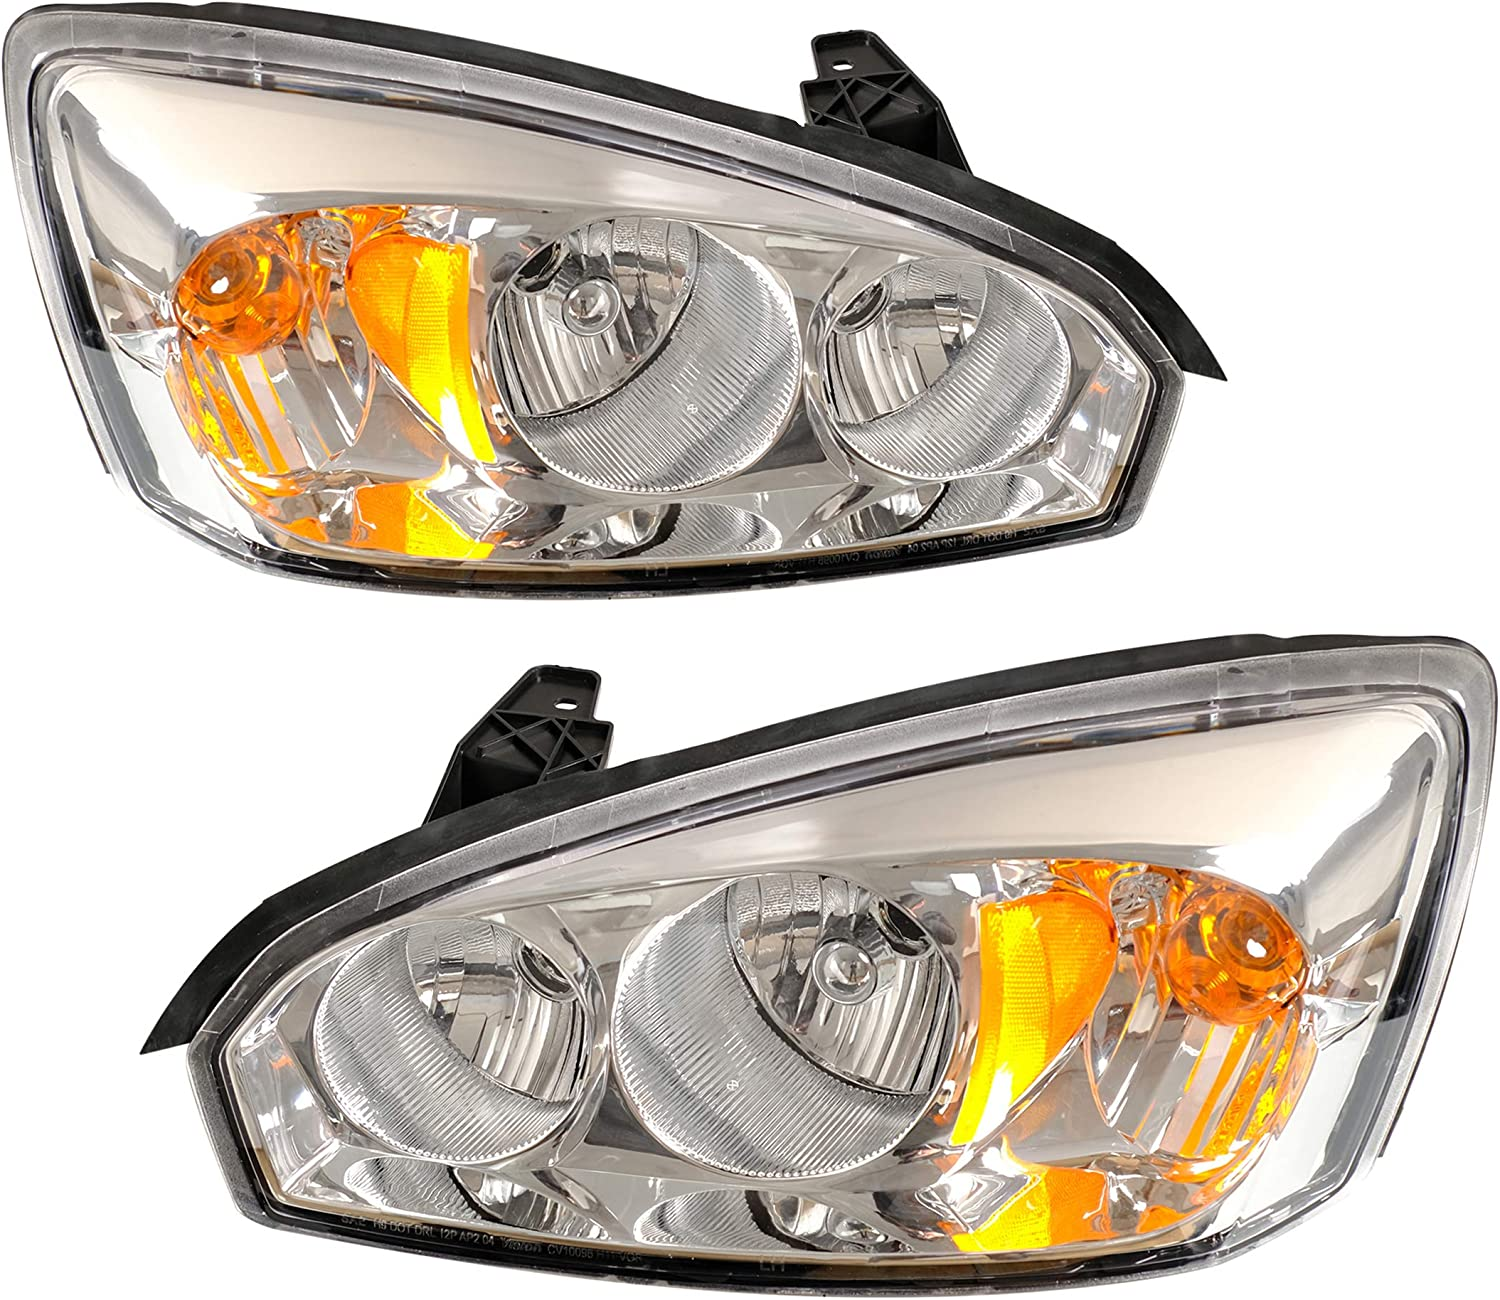 (Update)2Pcs Headlight Assembly for 2004 2005 2006 2007 2008 Che